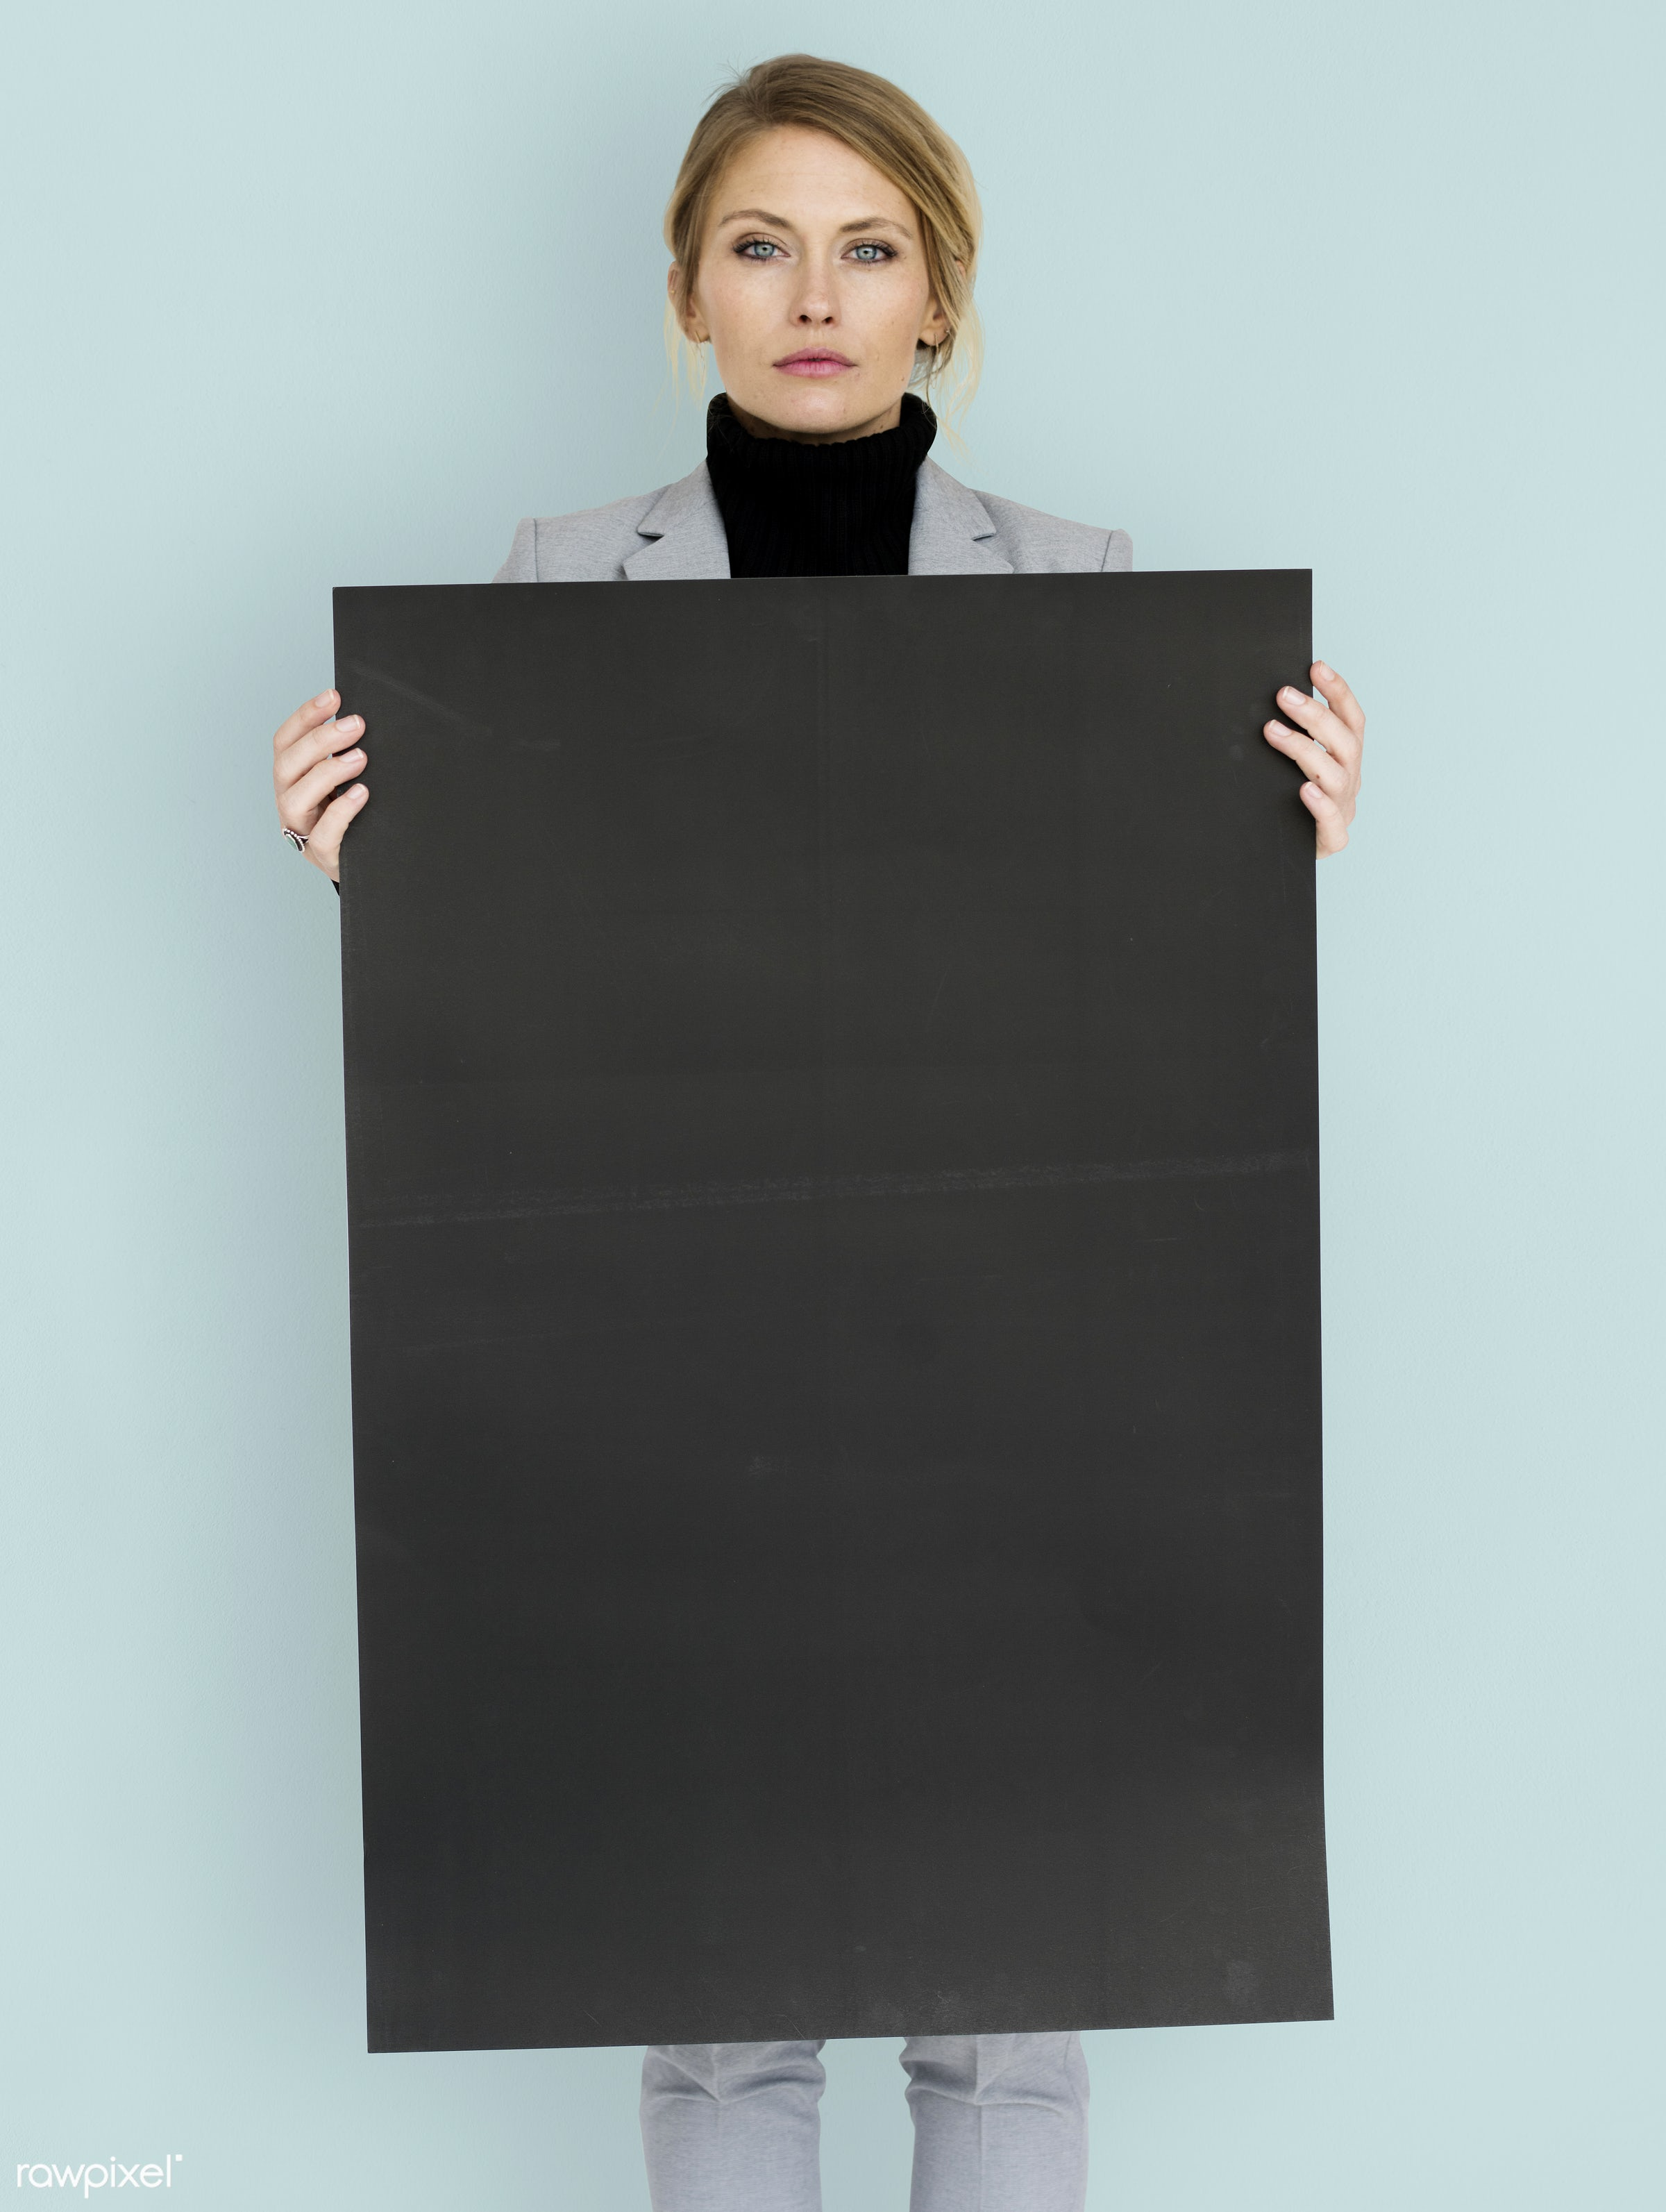 studio, expression, person, holding, courage, people, placard, woman, isolated, businesswoman, portrait, charming, face,...